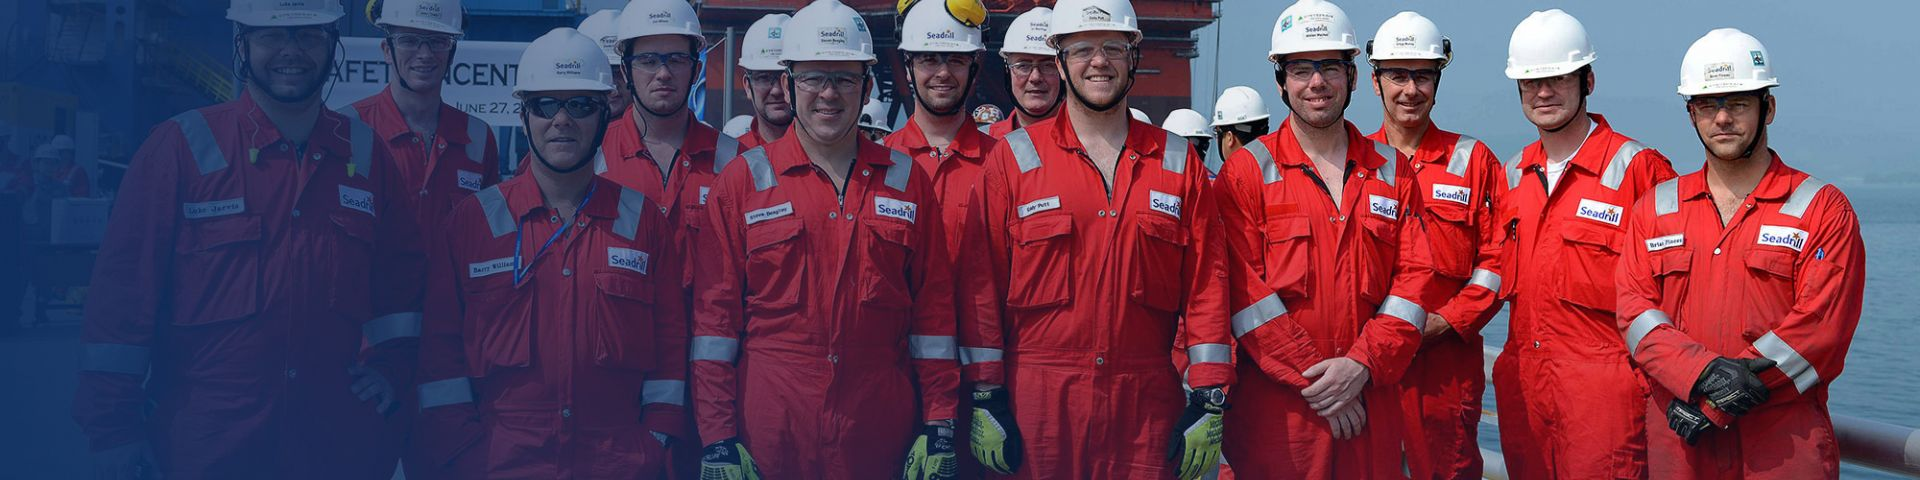 meet-our-offshore-team.jpg